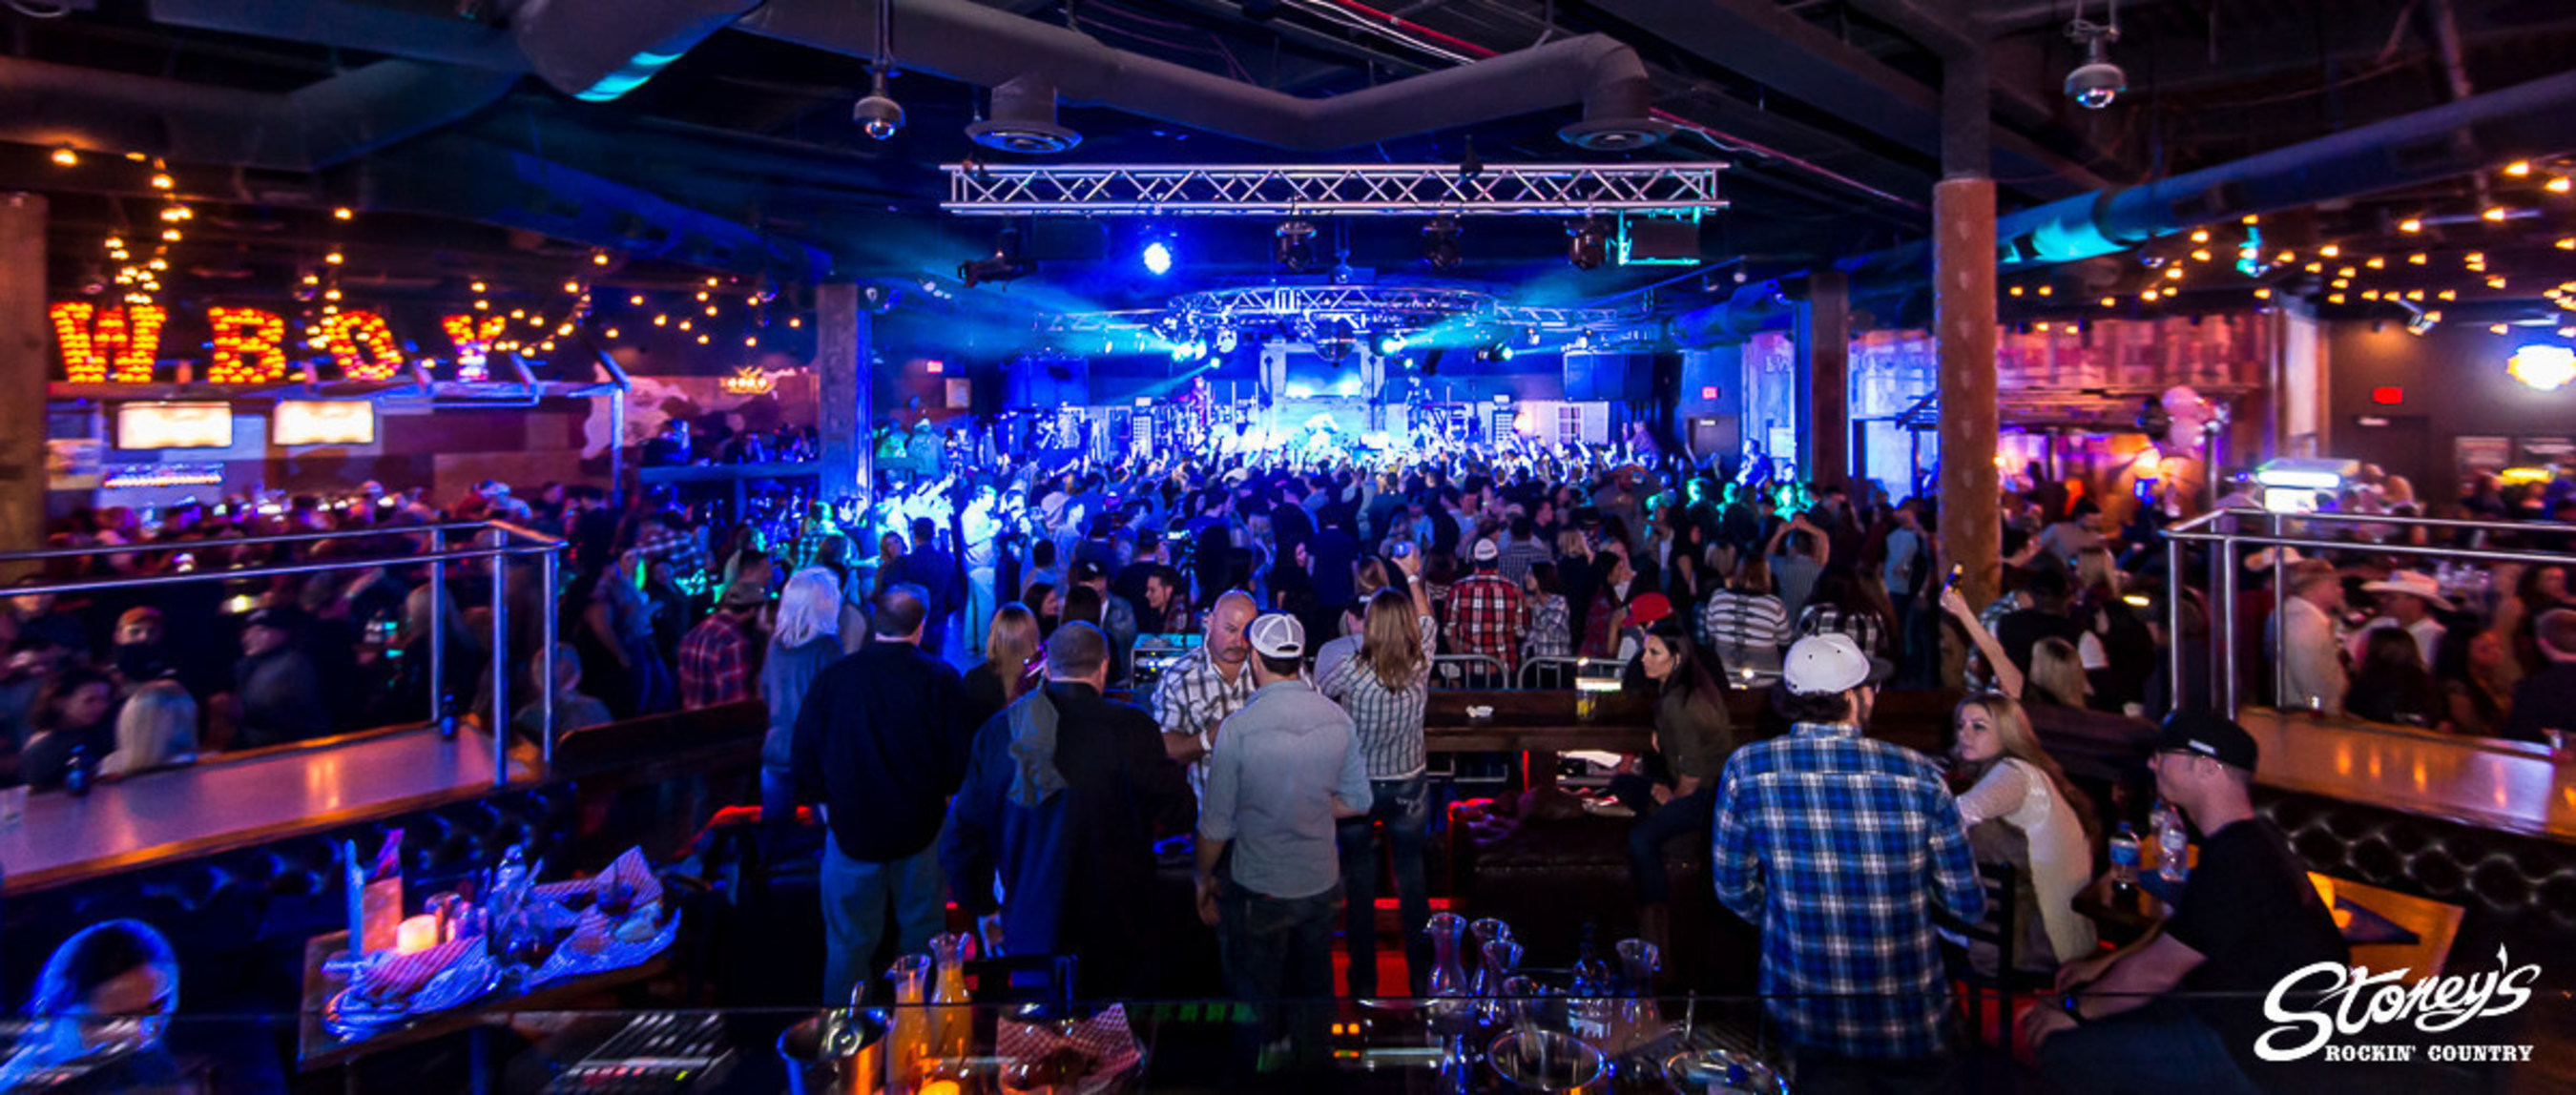 Packed dance floor at Stoney's Rockin' Country